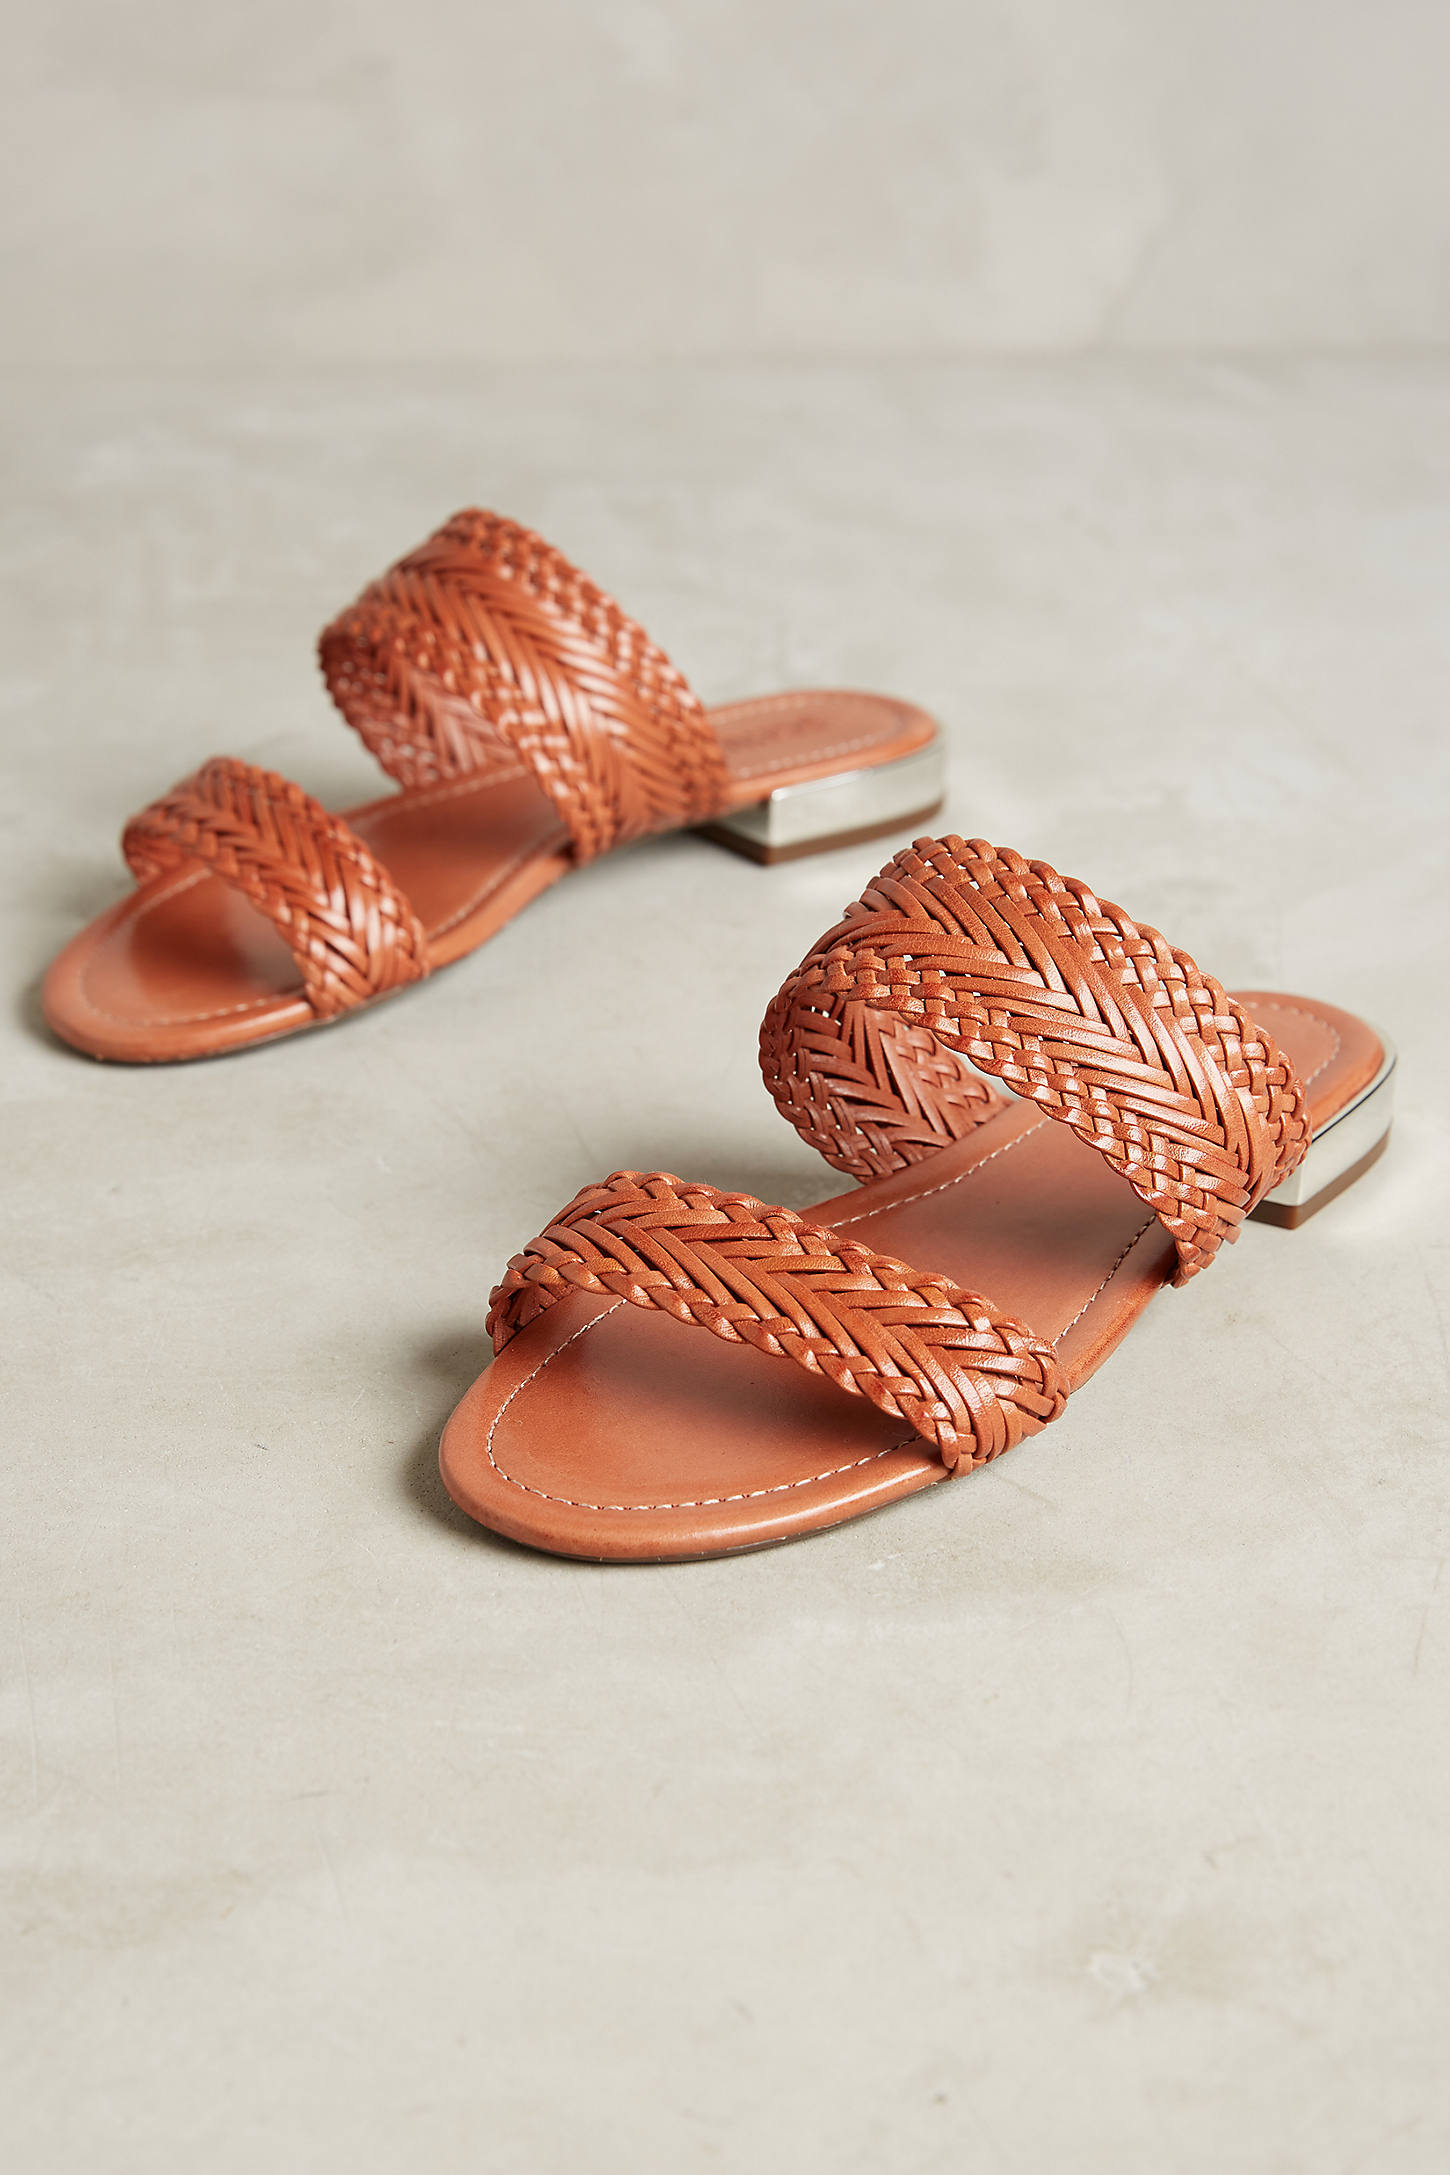 Schutz Caymana Slide Sandals